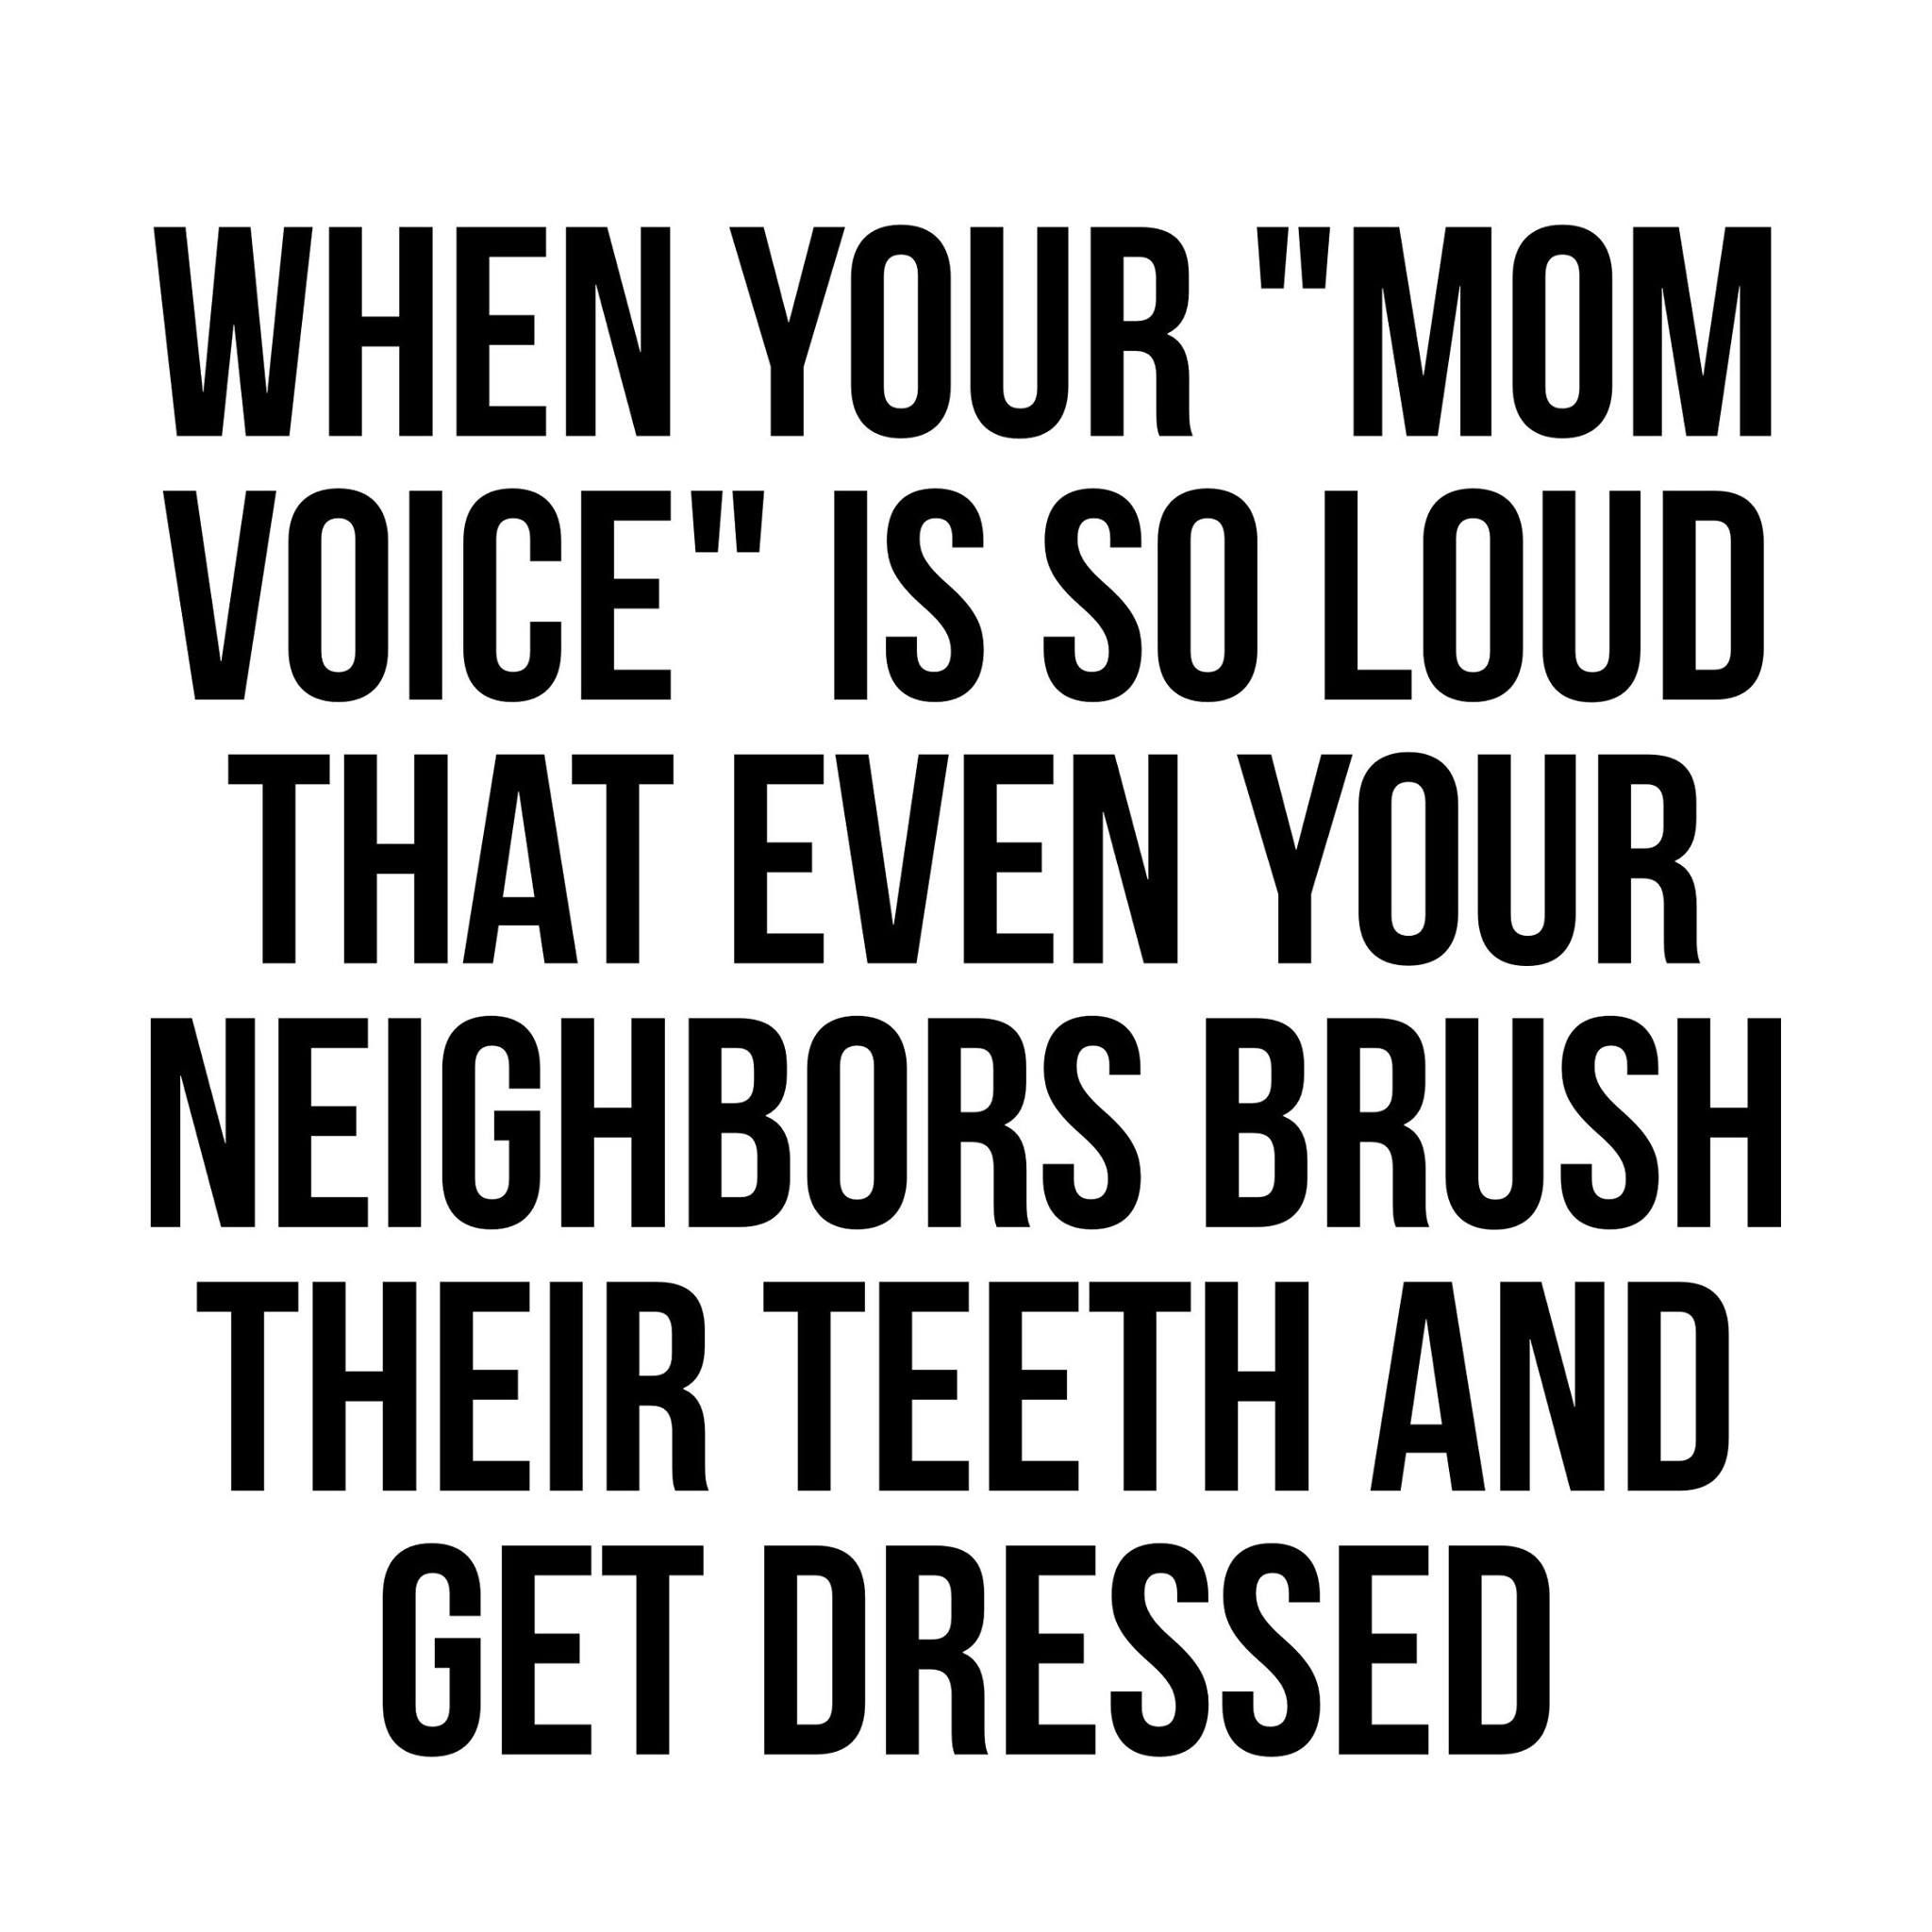 Funny Mom Quotes MY MOM! Hands down!! | Laugh It Up | Funny, Mom Humor, Parenting Humor Funny Mom Quotes